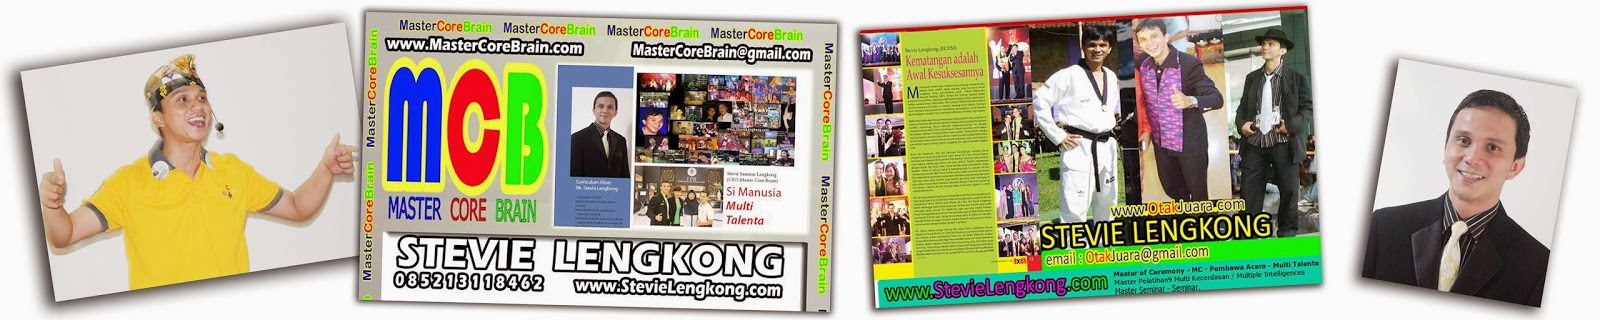 Stevie Lengkong the Multi Talented Trainer Motivator from Indonesia